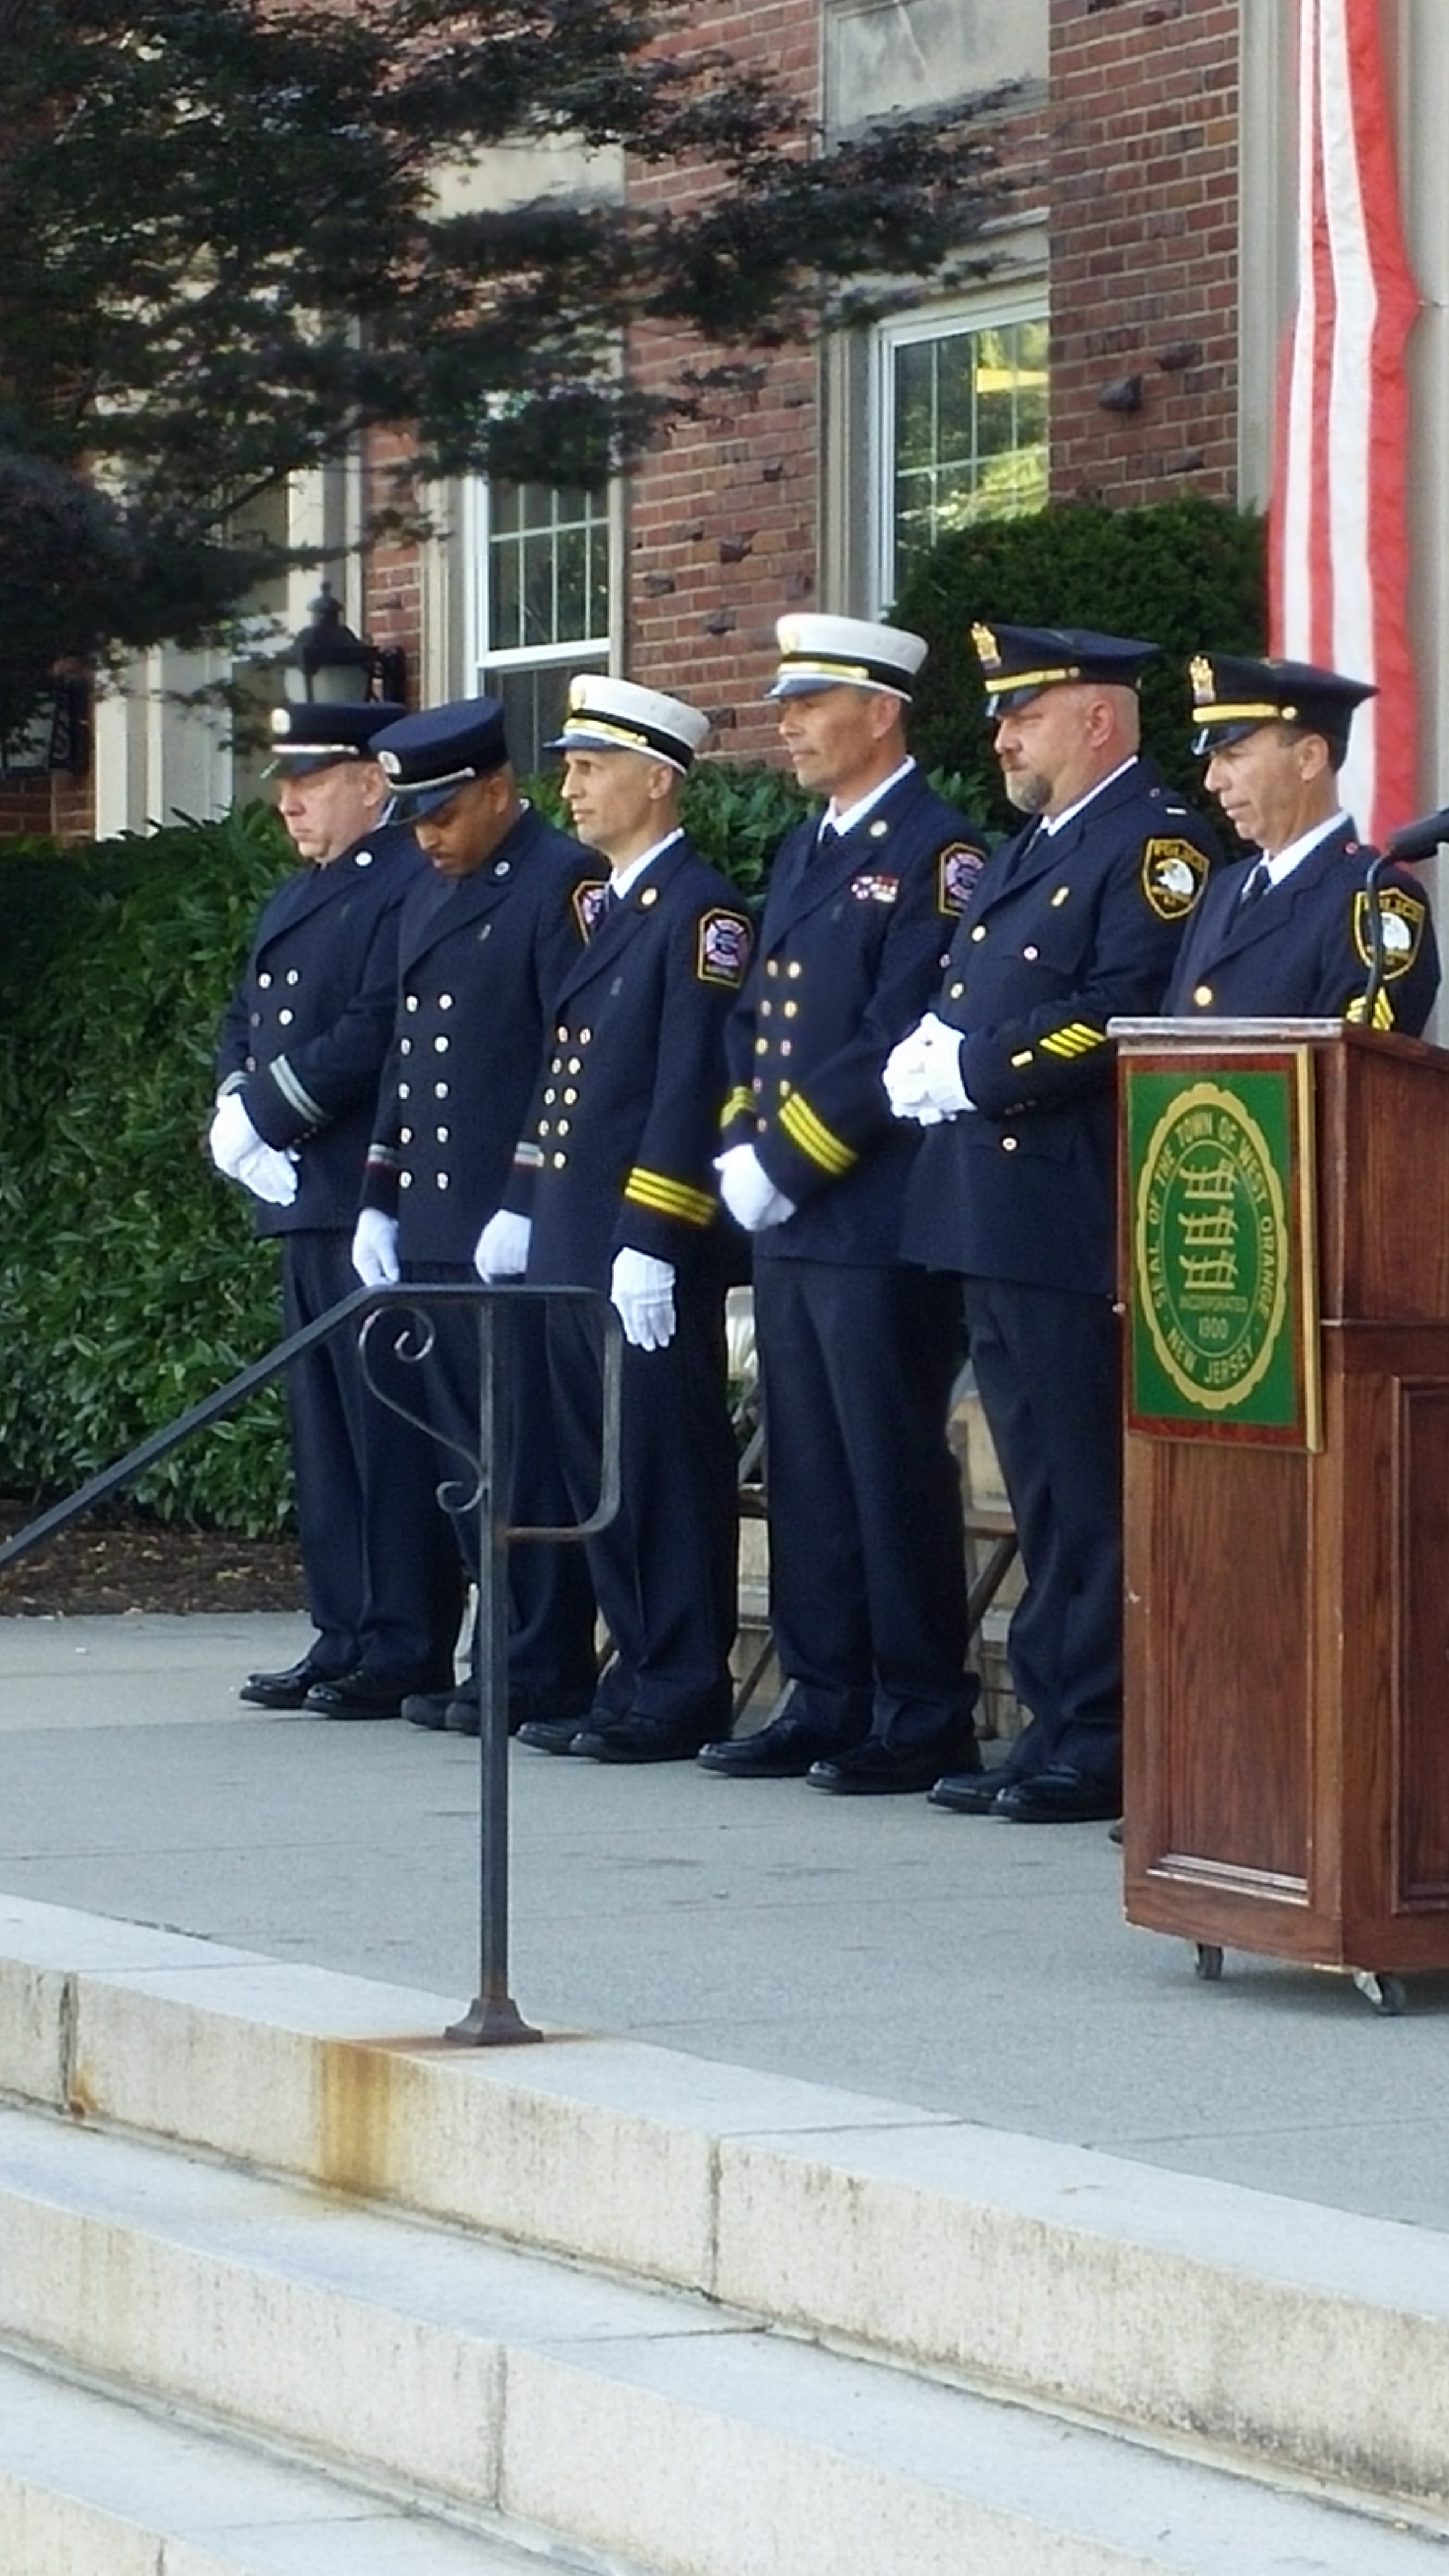 Joint Police & Fire Promotion Ceremony 6/20/2017